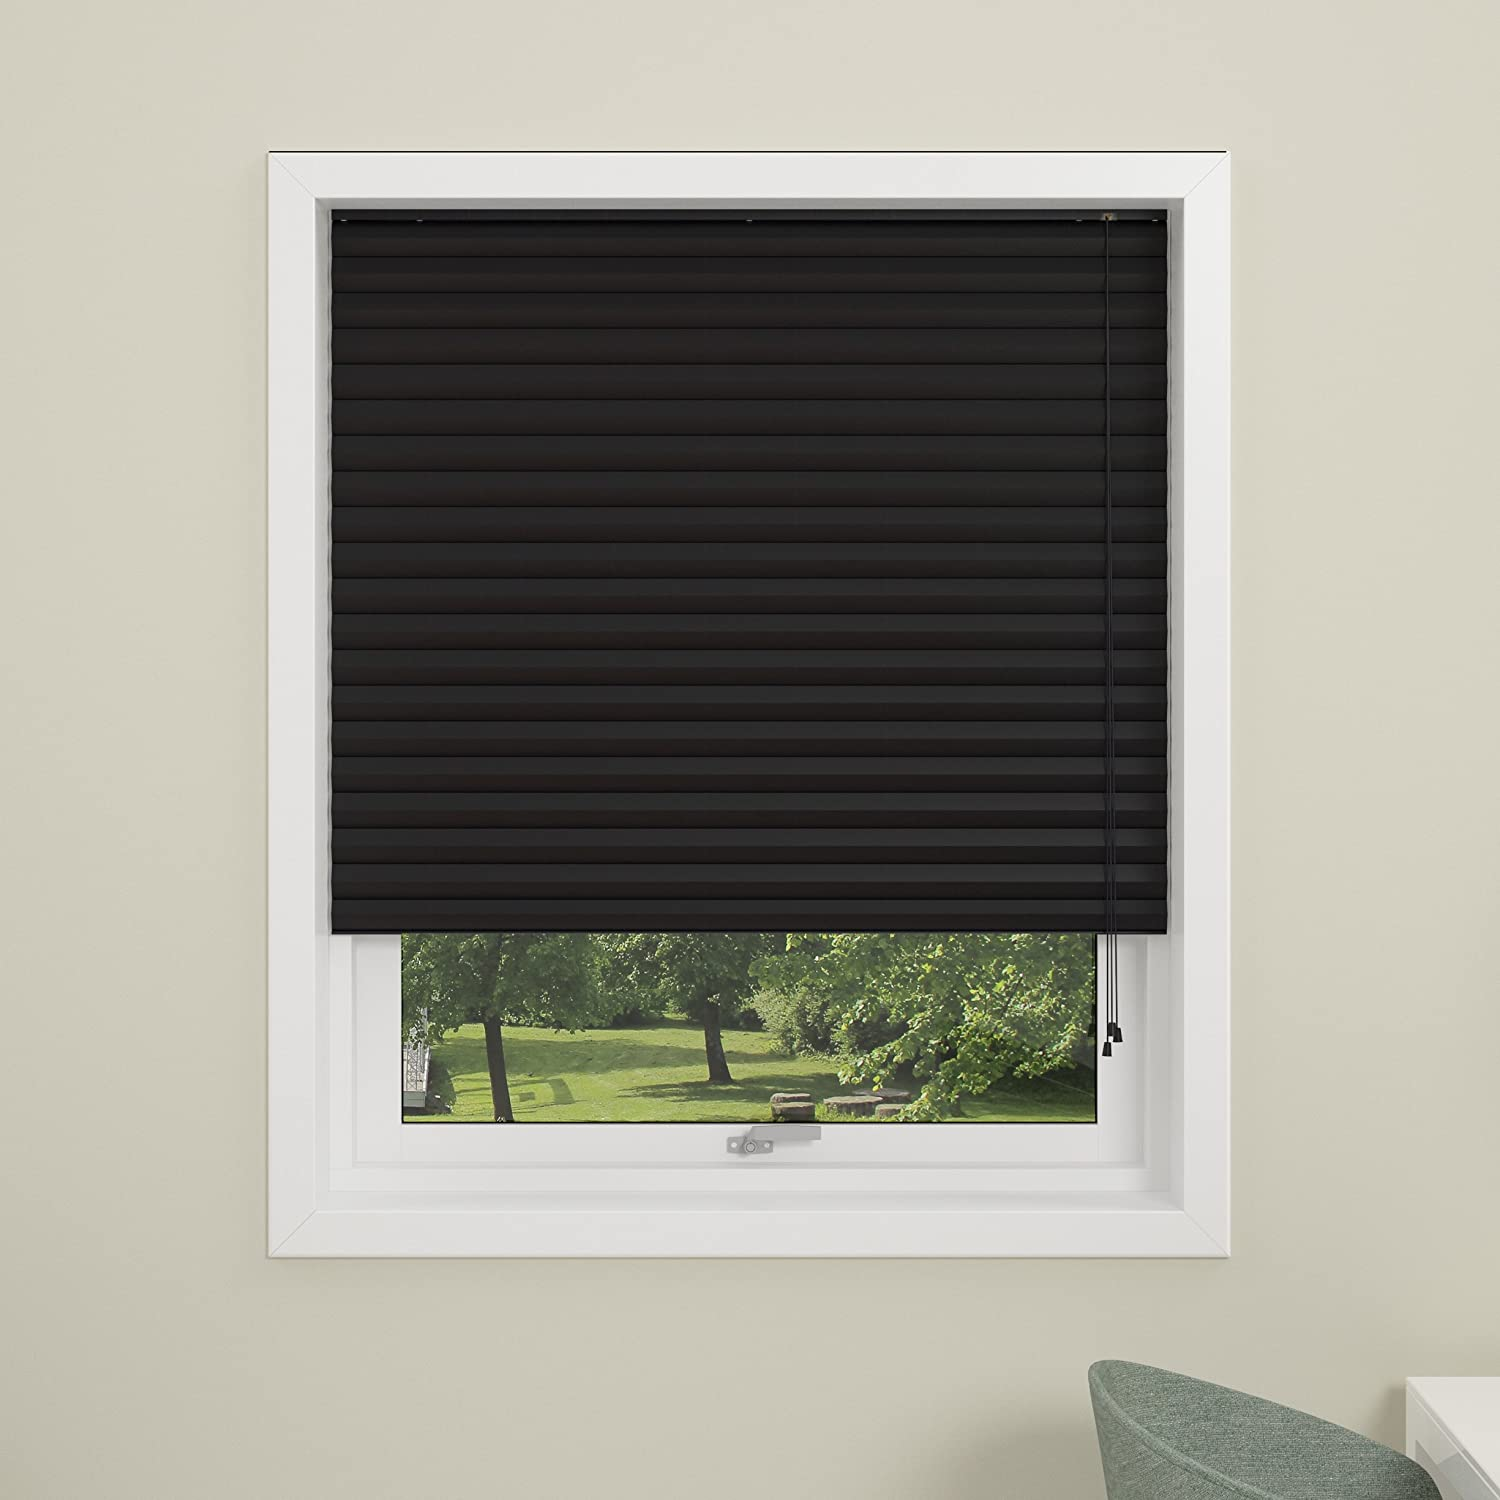 DEBEL 60 x 130 cm 100 Percent Polyester Honeycomb Blackout Pleated Blind, Black DECO GROUP 747600059